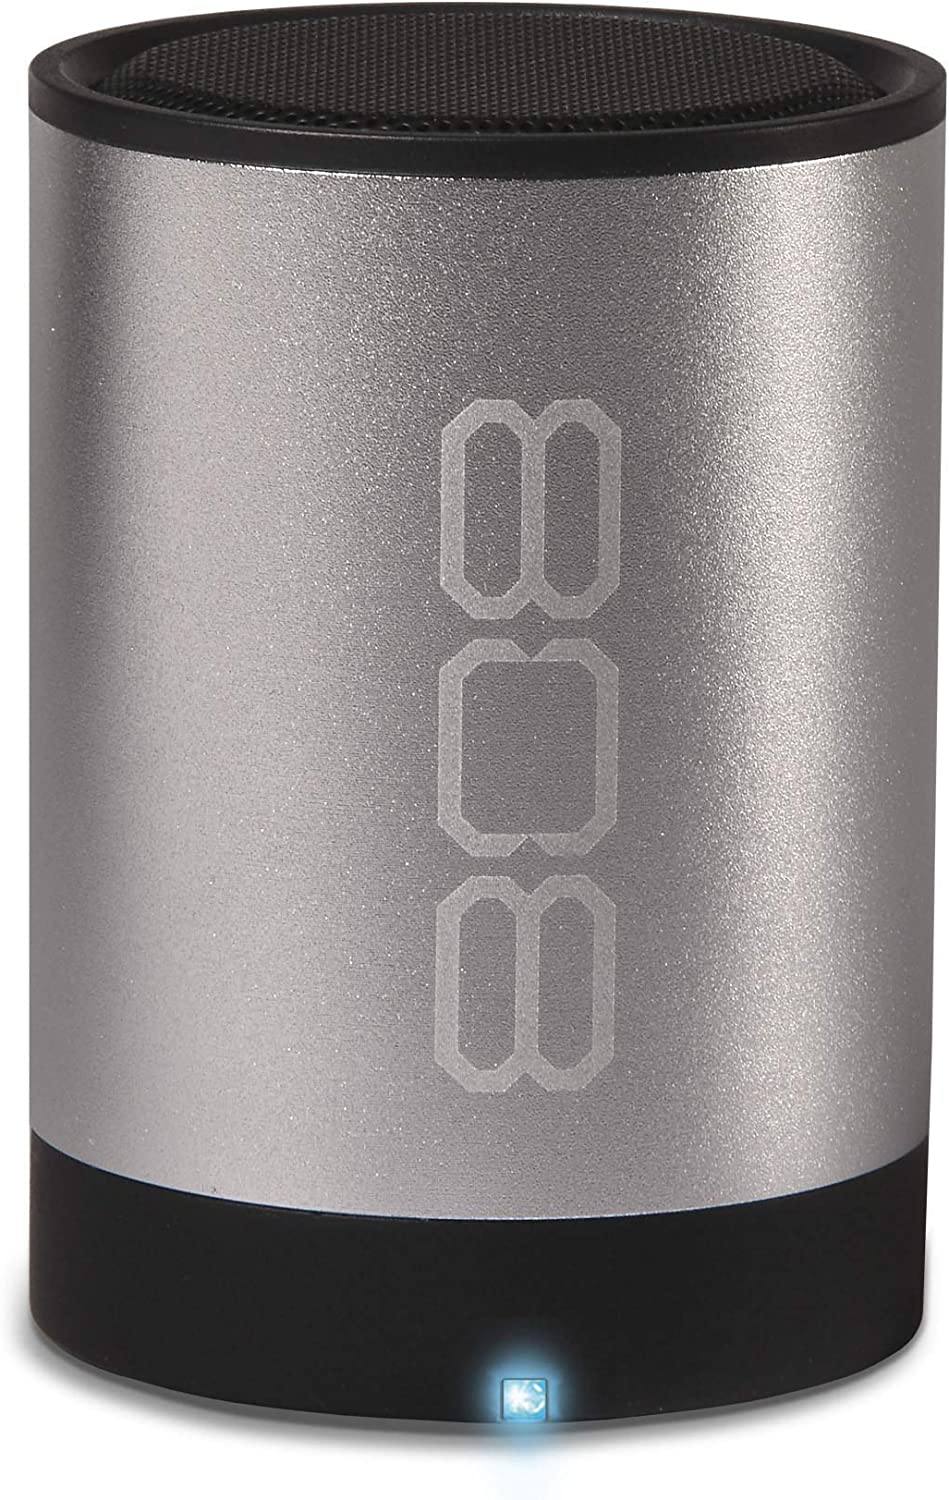 Wireless Bluetooth Speaker 808 CANZ 2 - Silver - Portable Bluetooth Speaker System with Powerful Bass and Dynamic Range